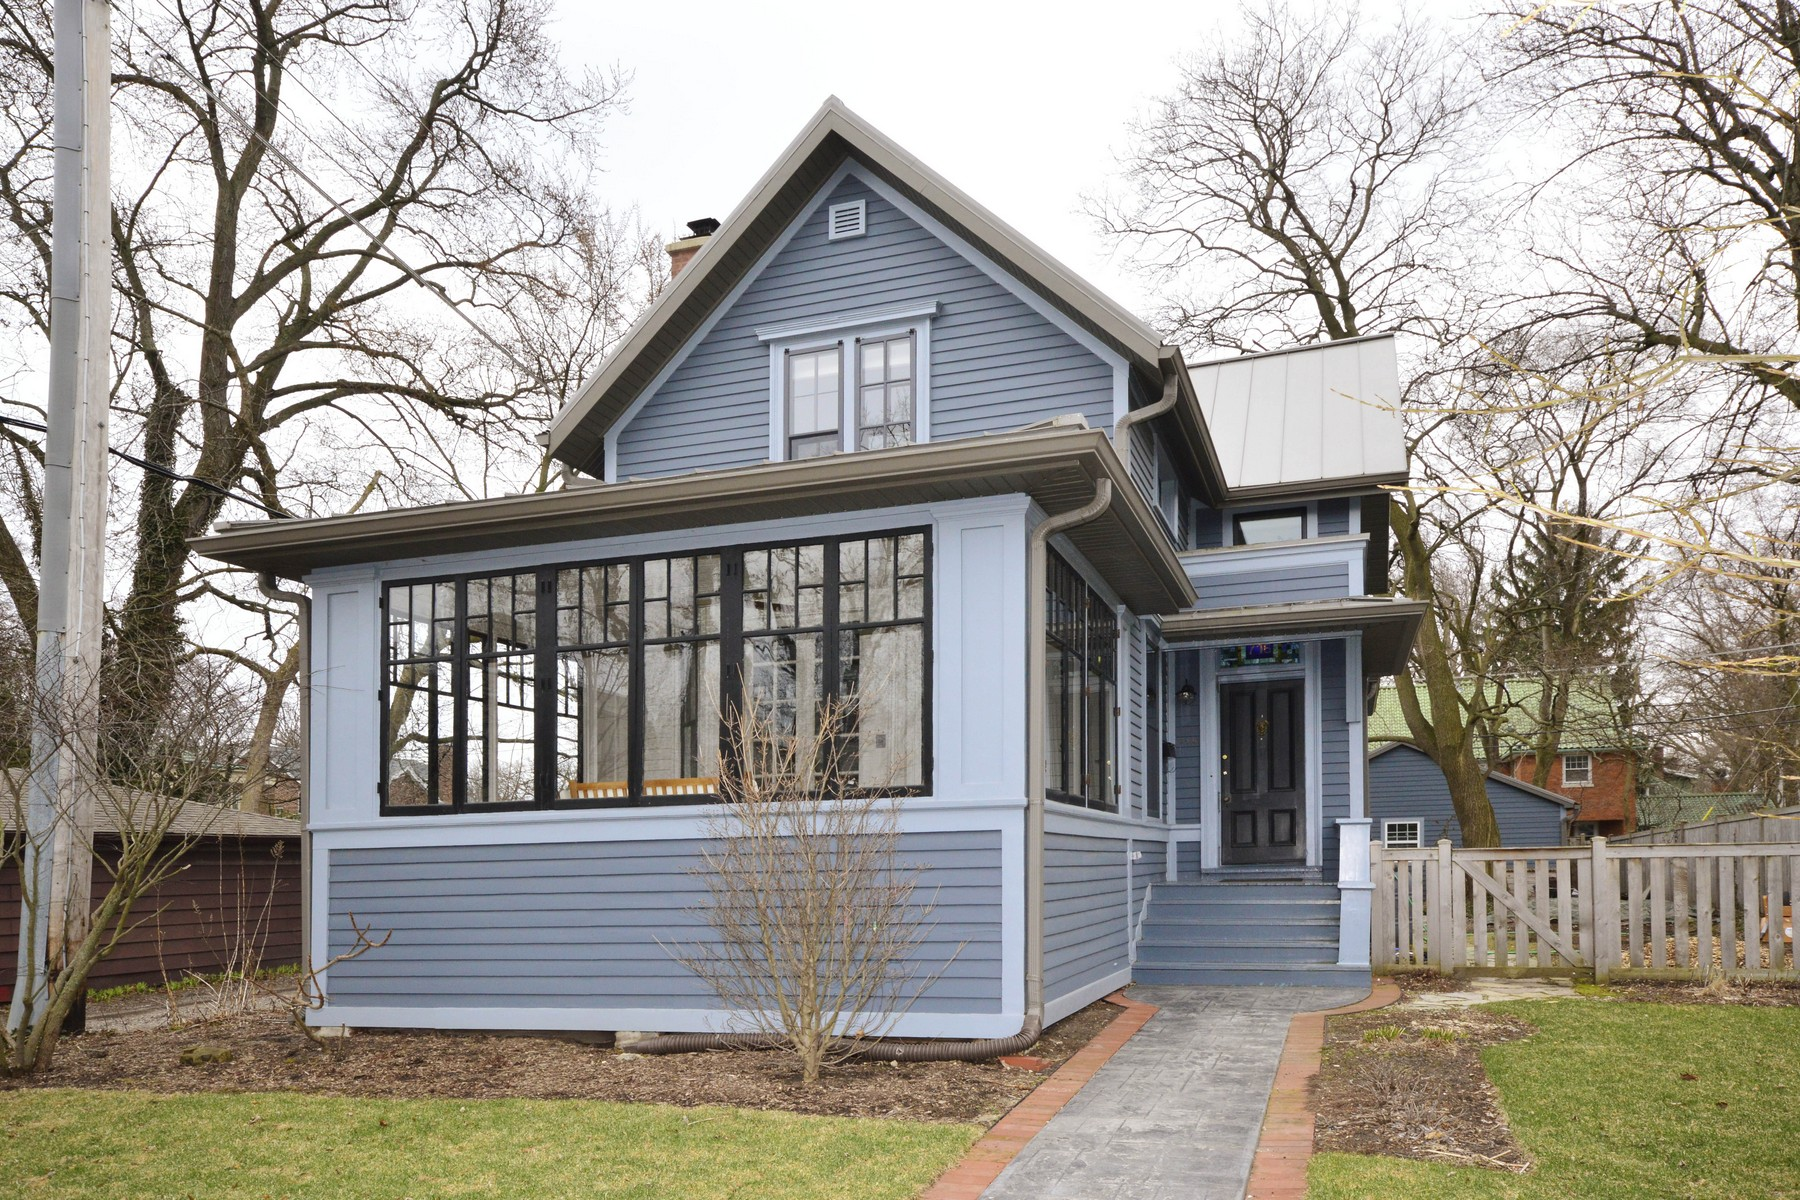 Single Family Home for Sale at Stunning Green Renovation 716 Clinton Place Evanston, Illinois 60201 United States